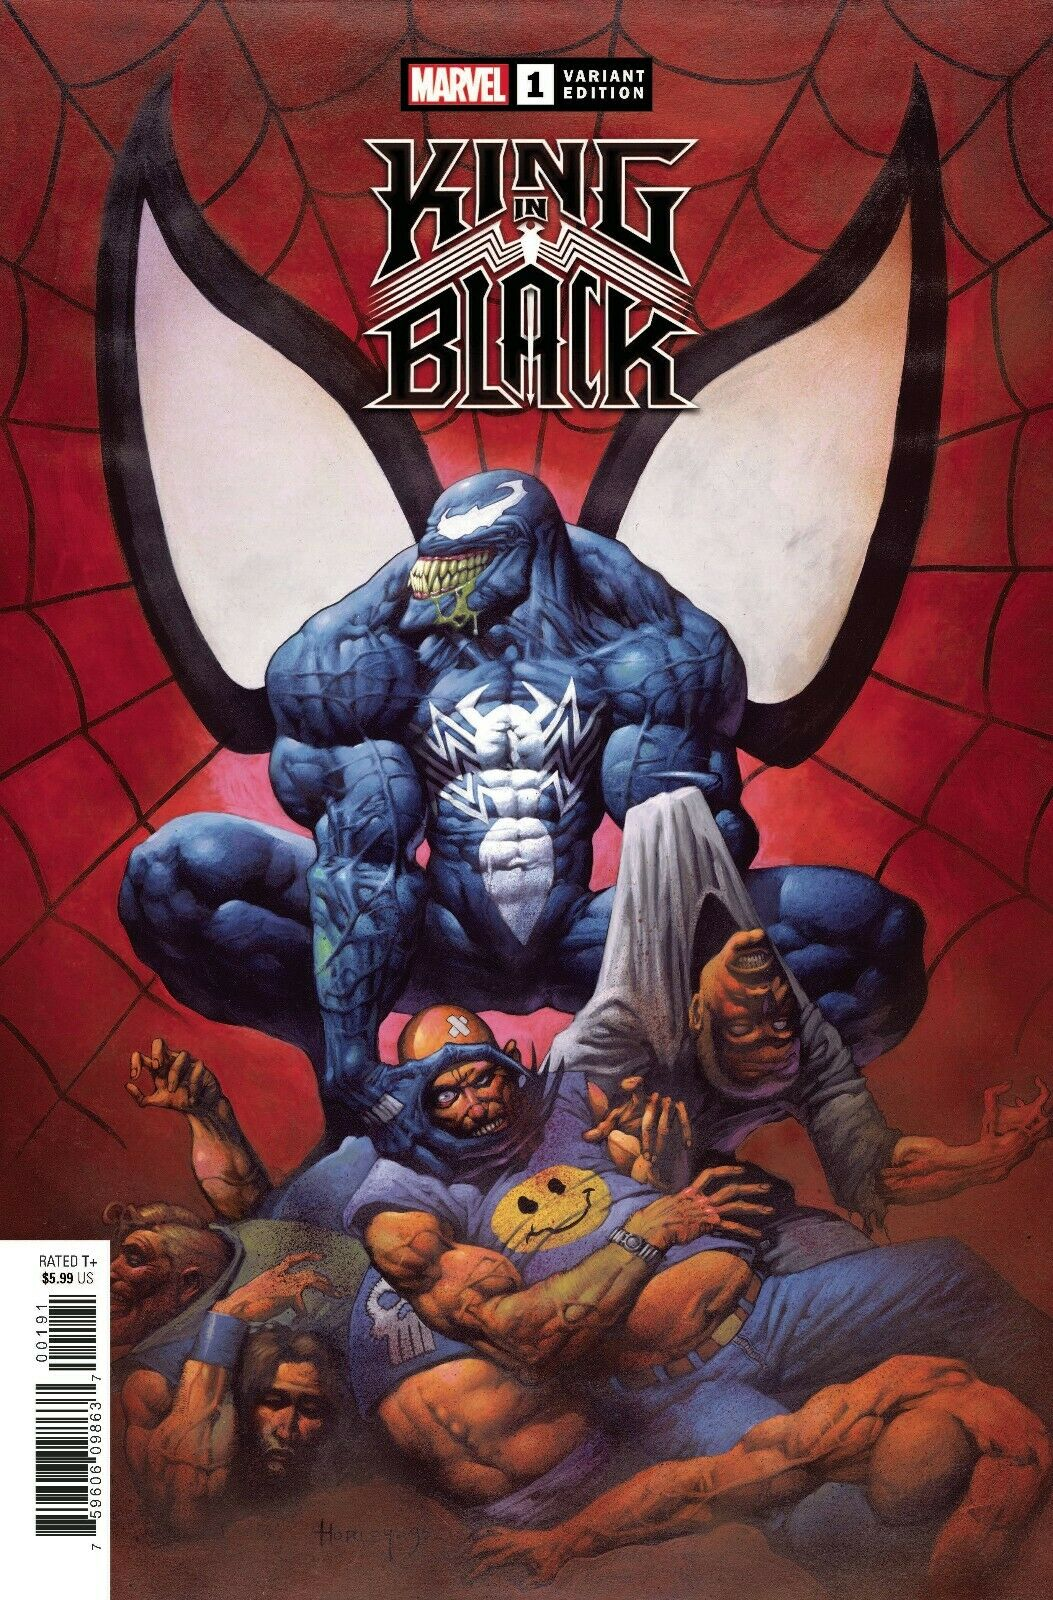 King in Black 1 Clayton Crain Venom Knull Amazing Spider-man Virgin Variant DC Comics Marvel Comics X-Men Batman East Side Comics Virgin Exclusive cgc signed ss comics